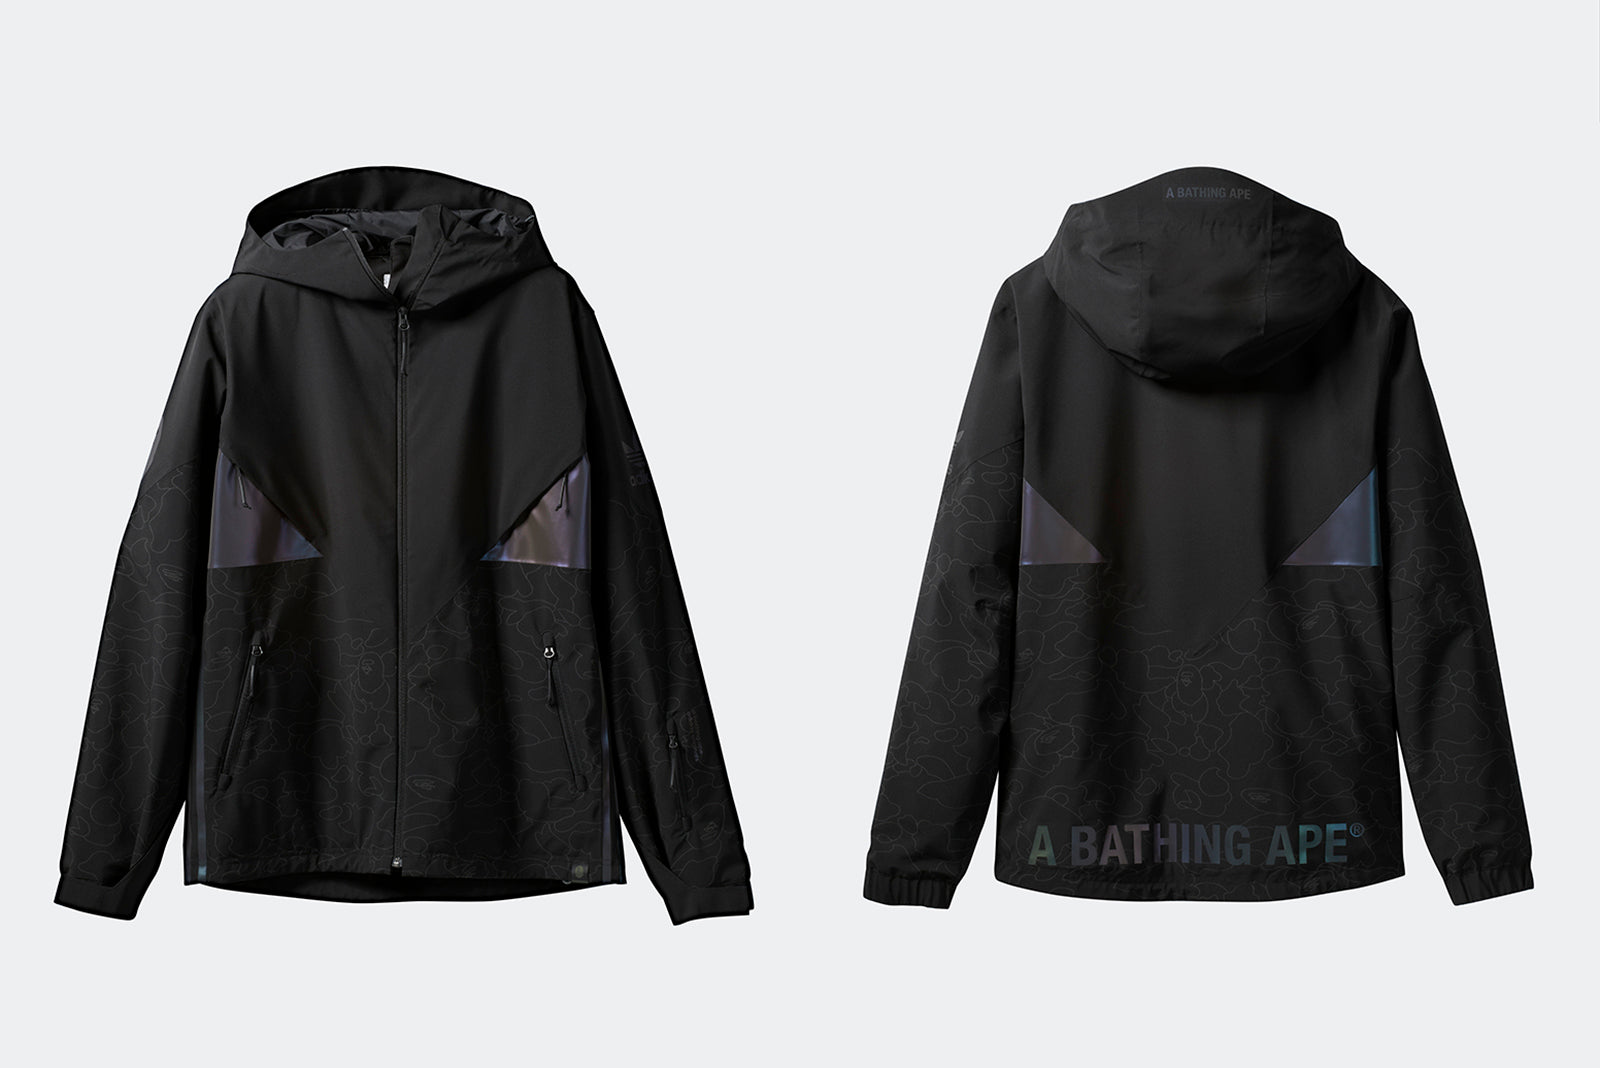 832946b5a91 adidas Snowboarding Jacket by BAPE DU0202 Black Price: £499.00. Launch:  Friday 2nd of November ONLINE; 23:00GMT